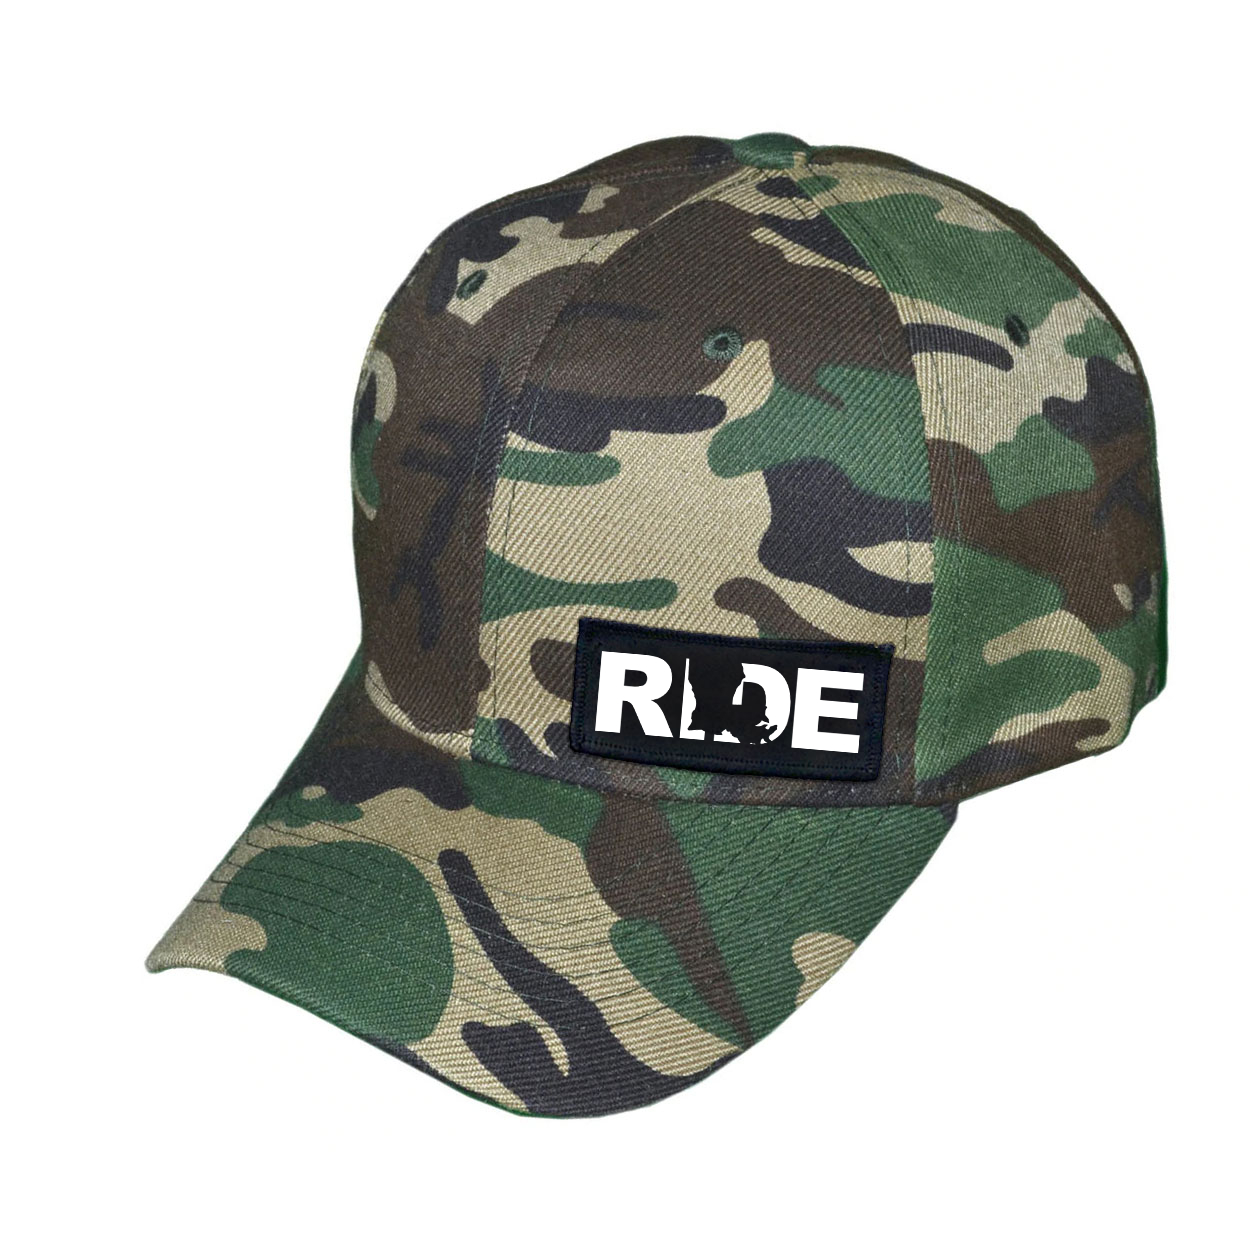 Ride Louisiana Night Out Woven Patch Hat Camo (White Logo)